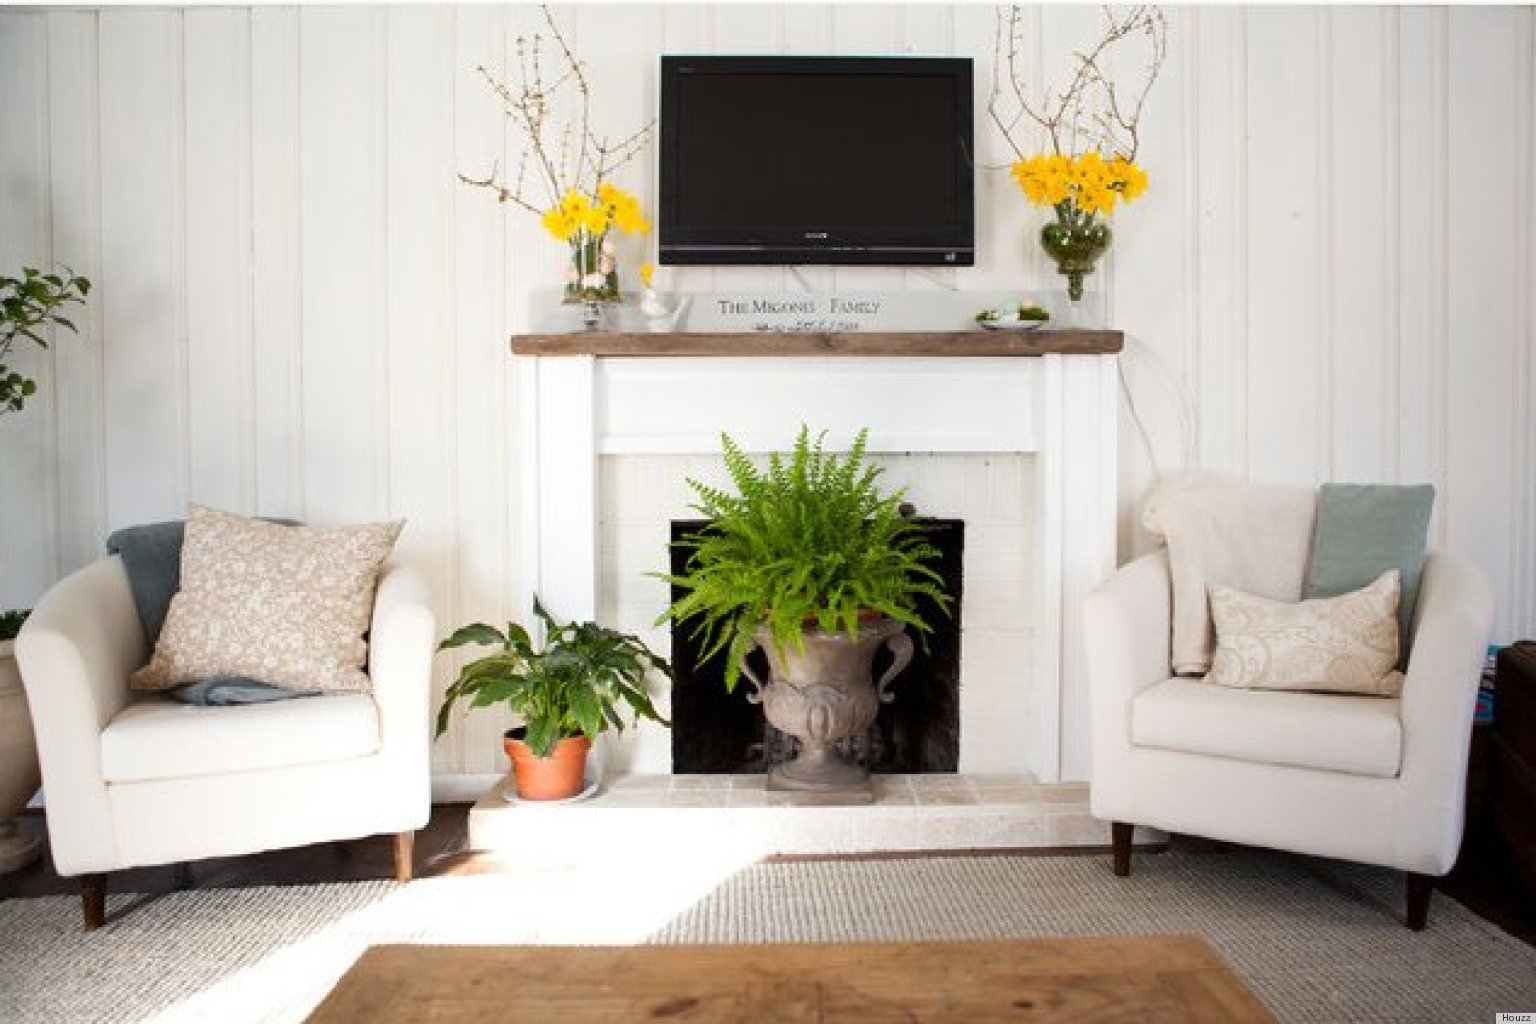 10 ways to decorate your fireplace in the summer since for How to decorate living room with fireplace